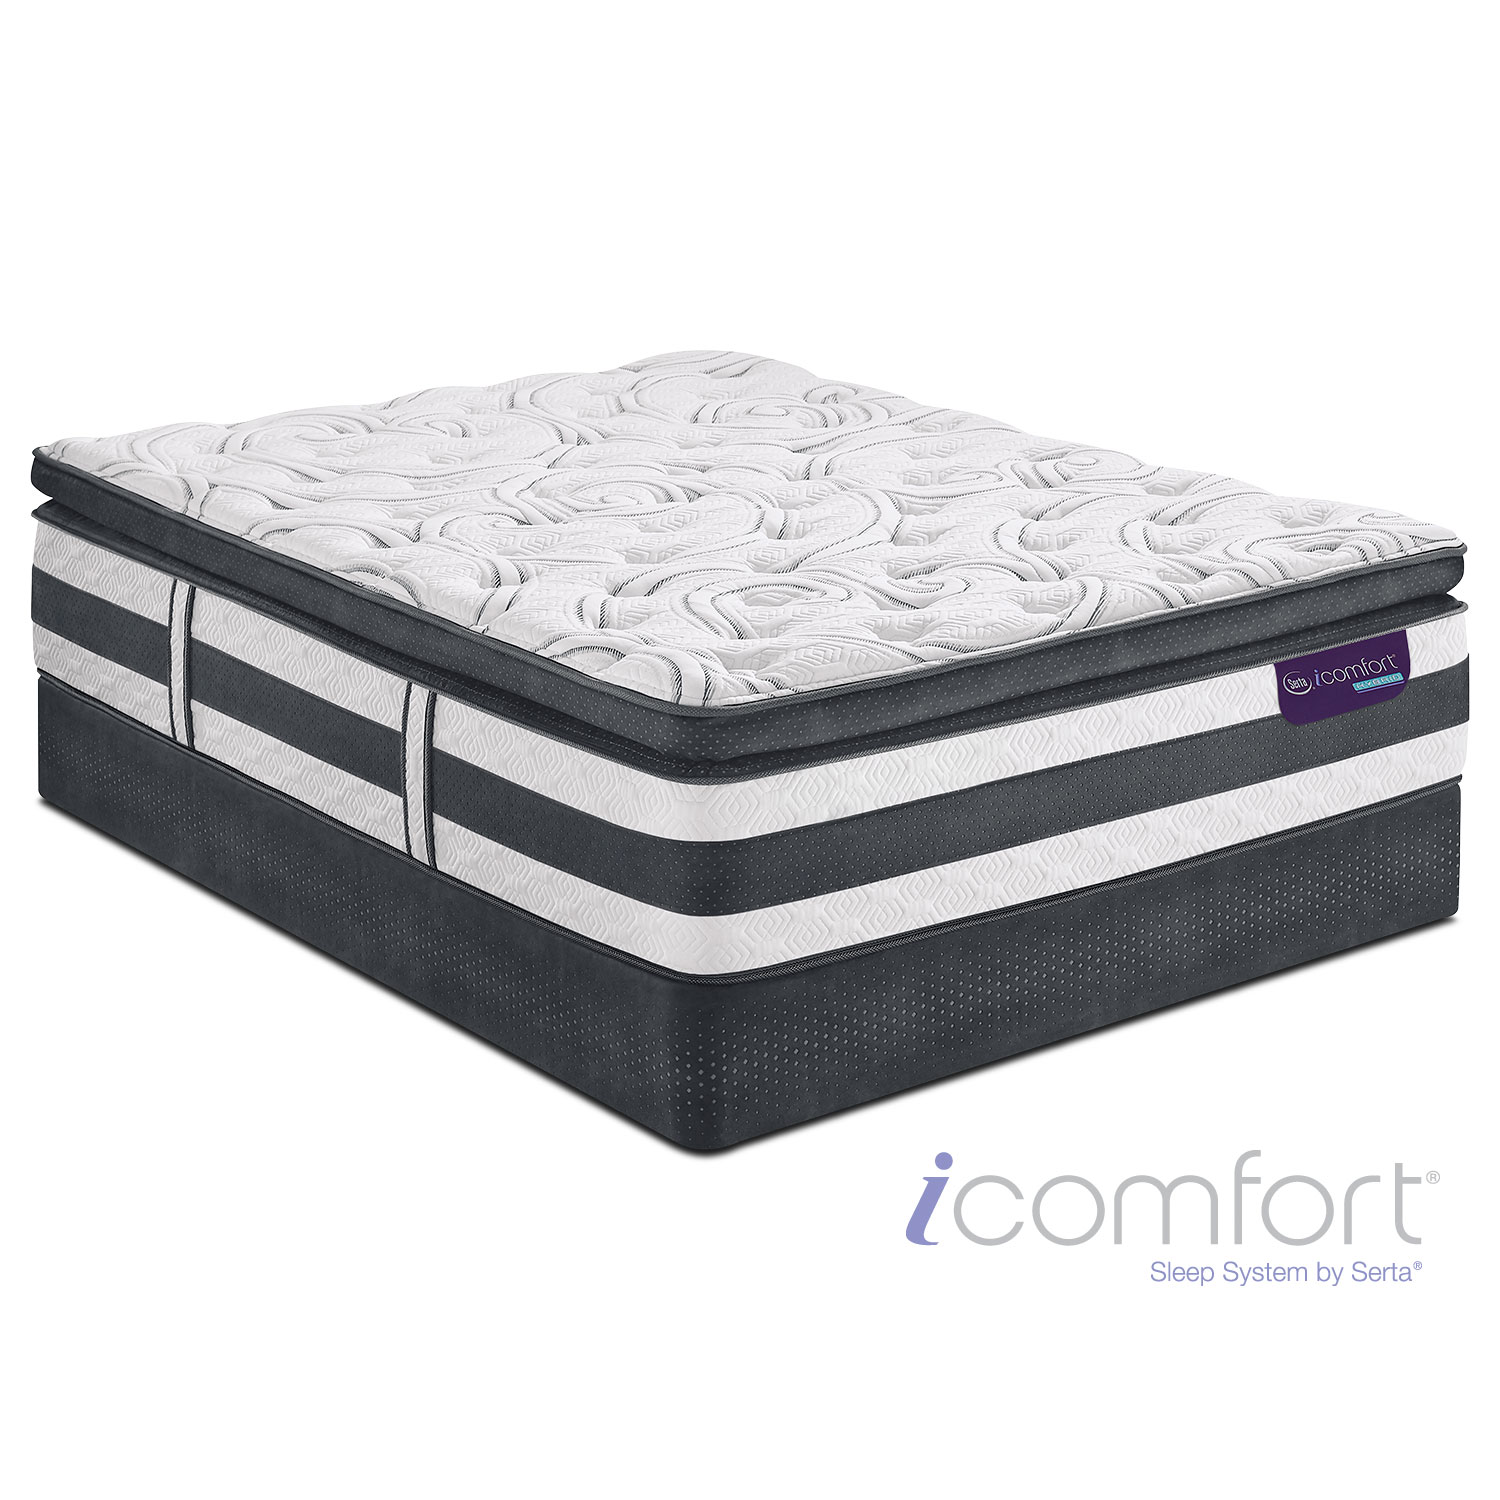 [Advisor Full Mattress/Foundation Set]